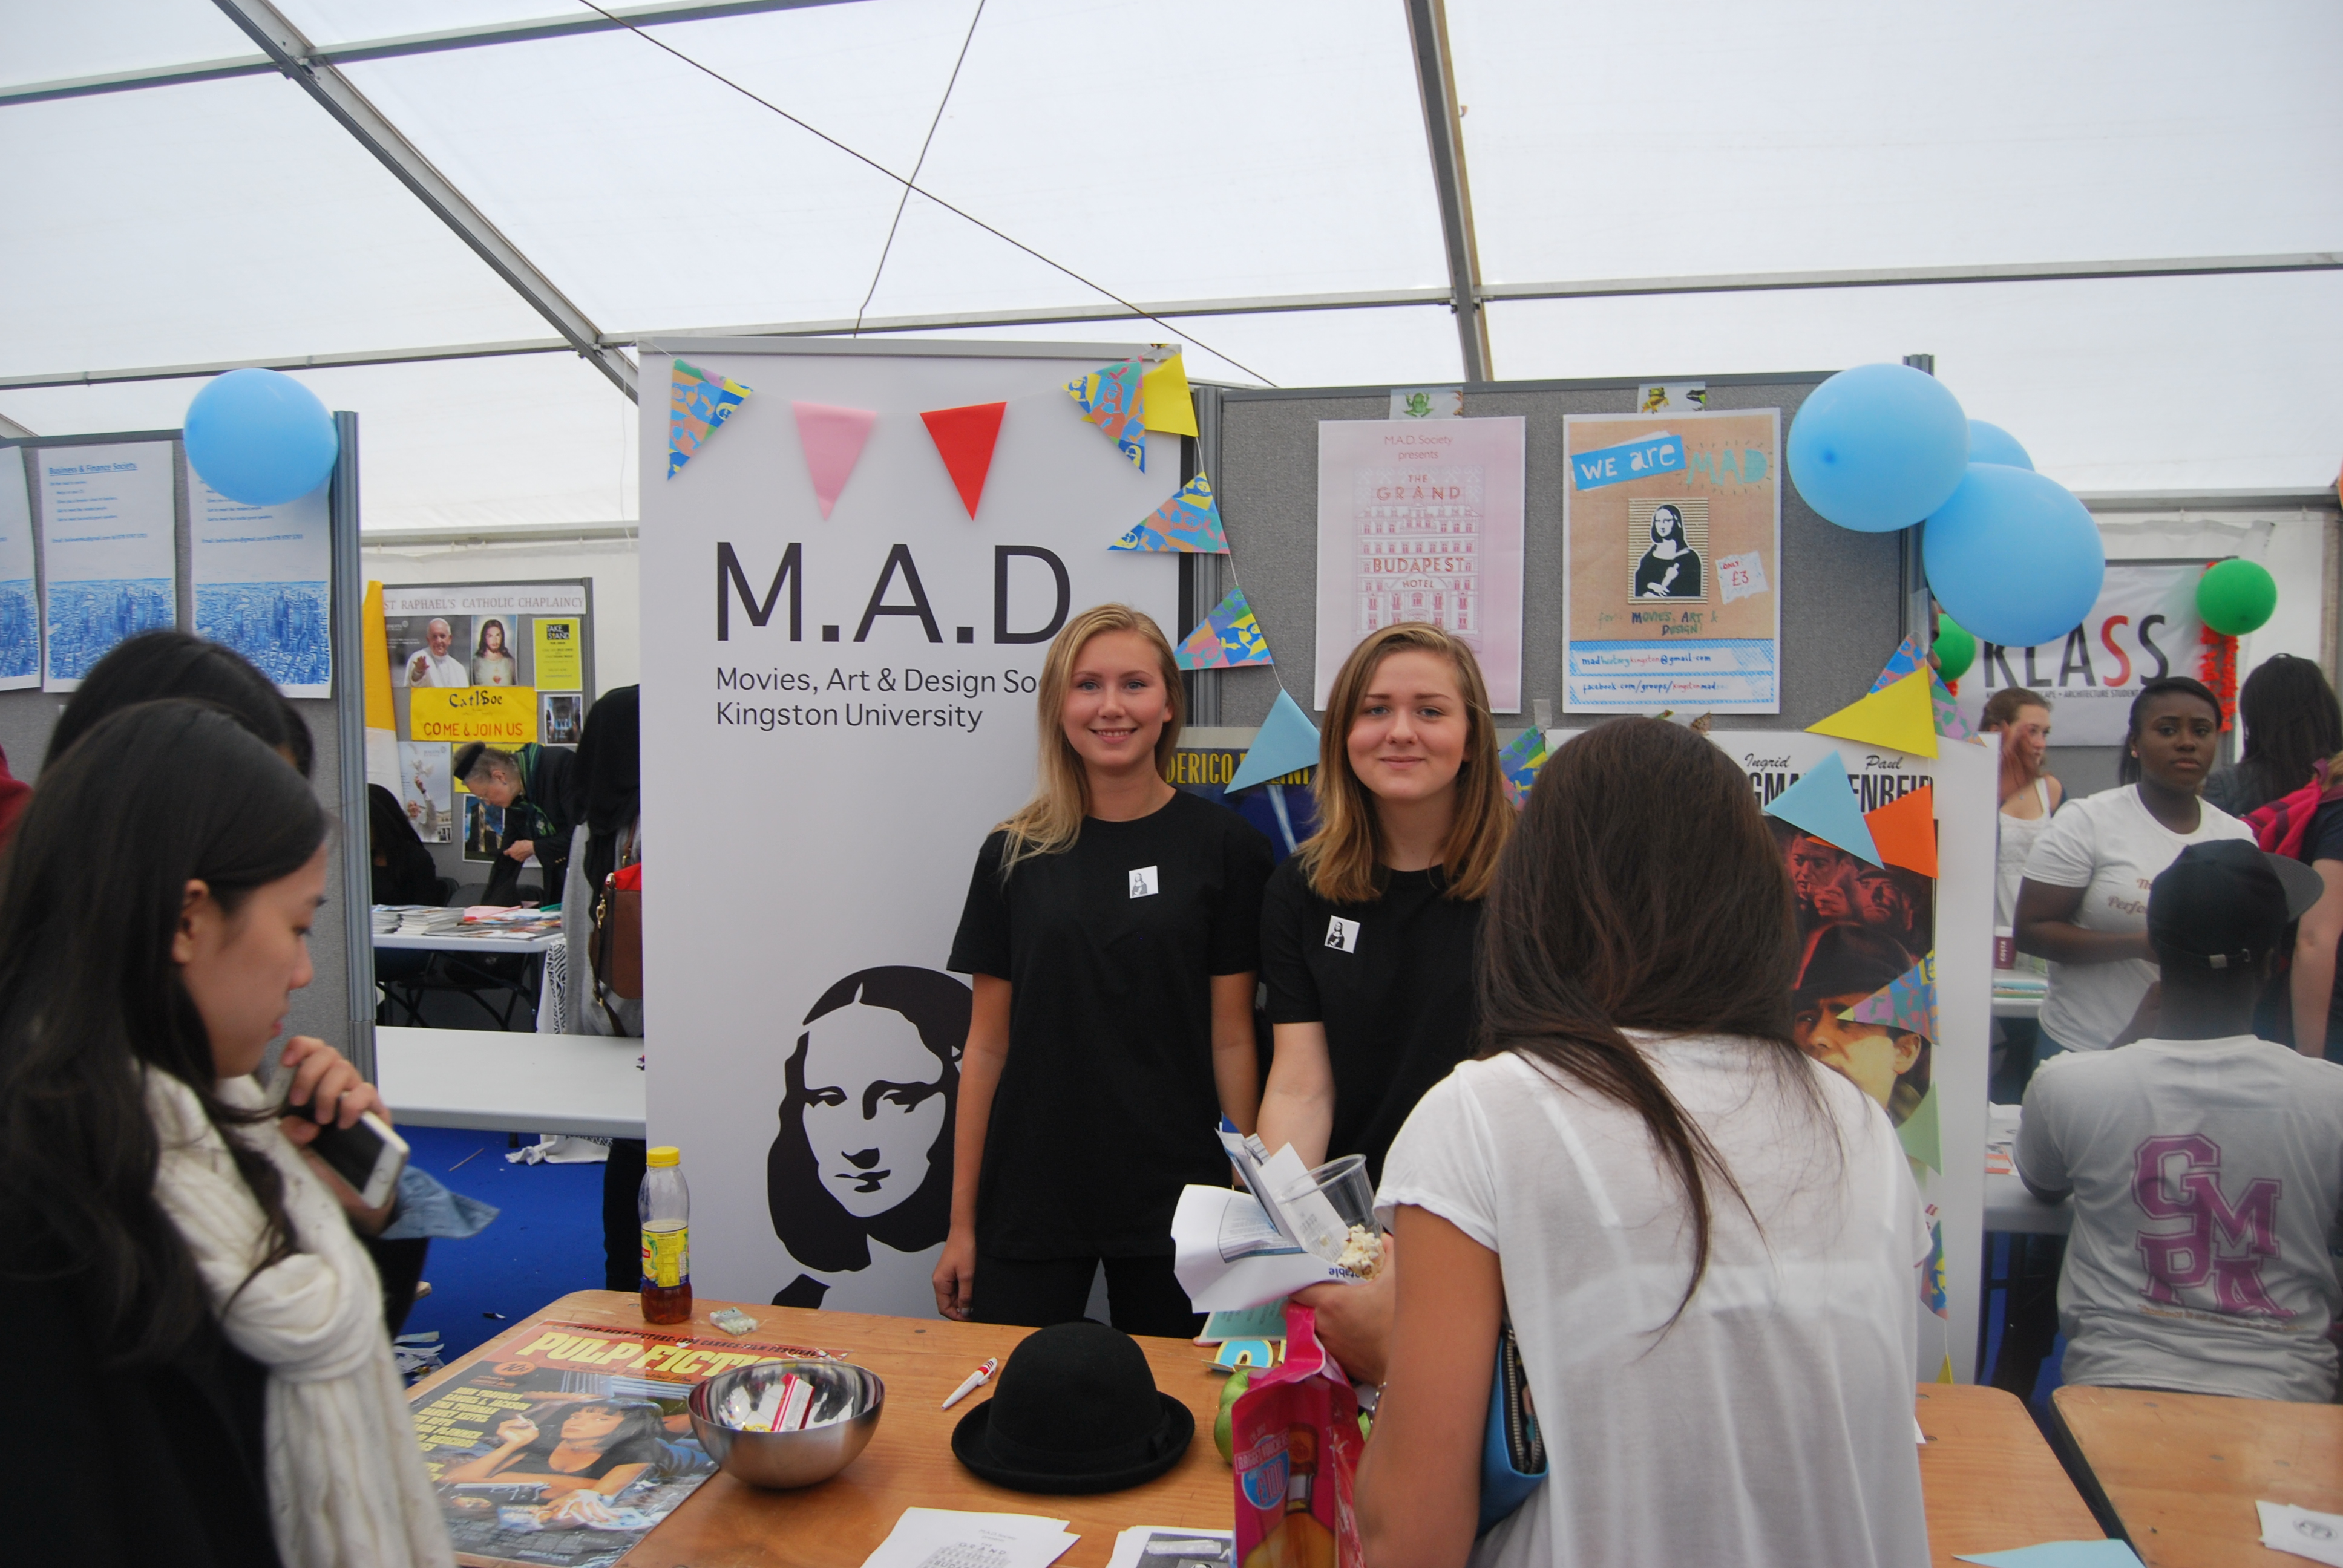 MADness: Movies, Art and Design Society recruiting students